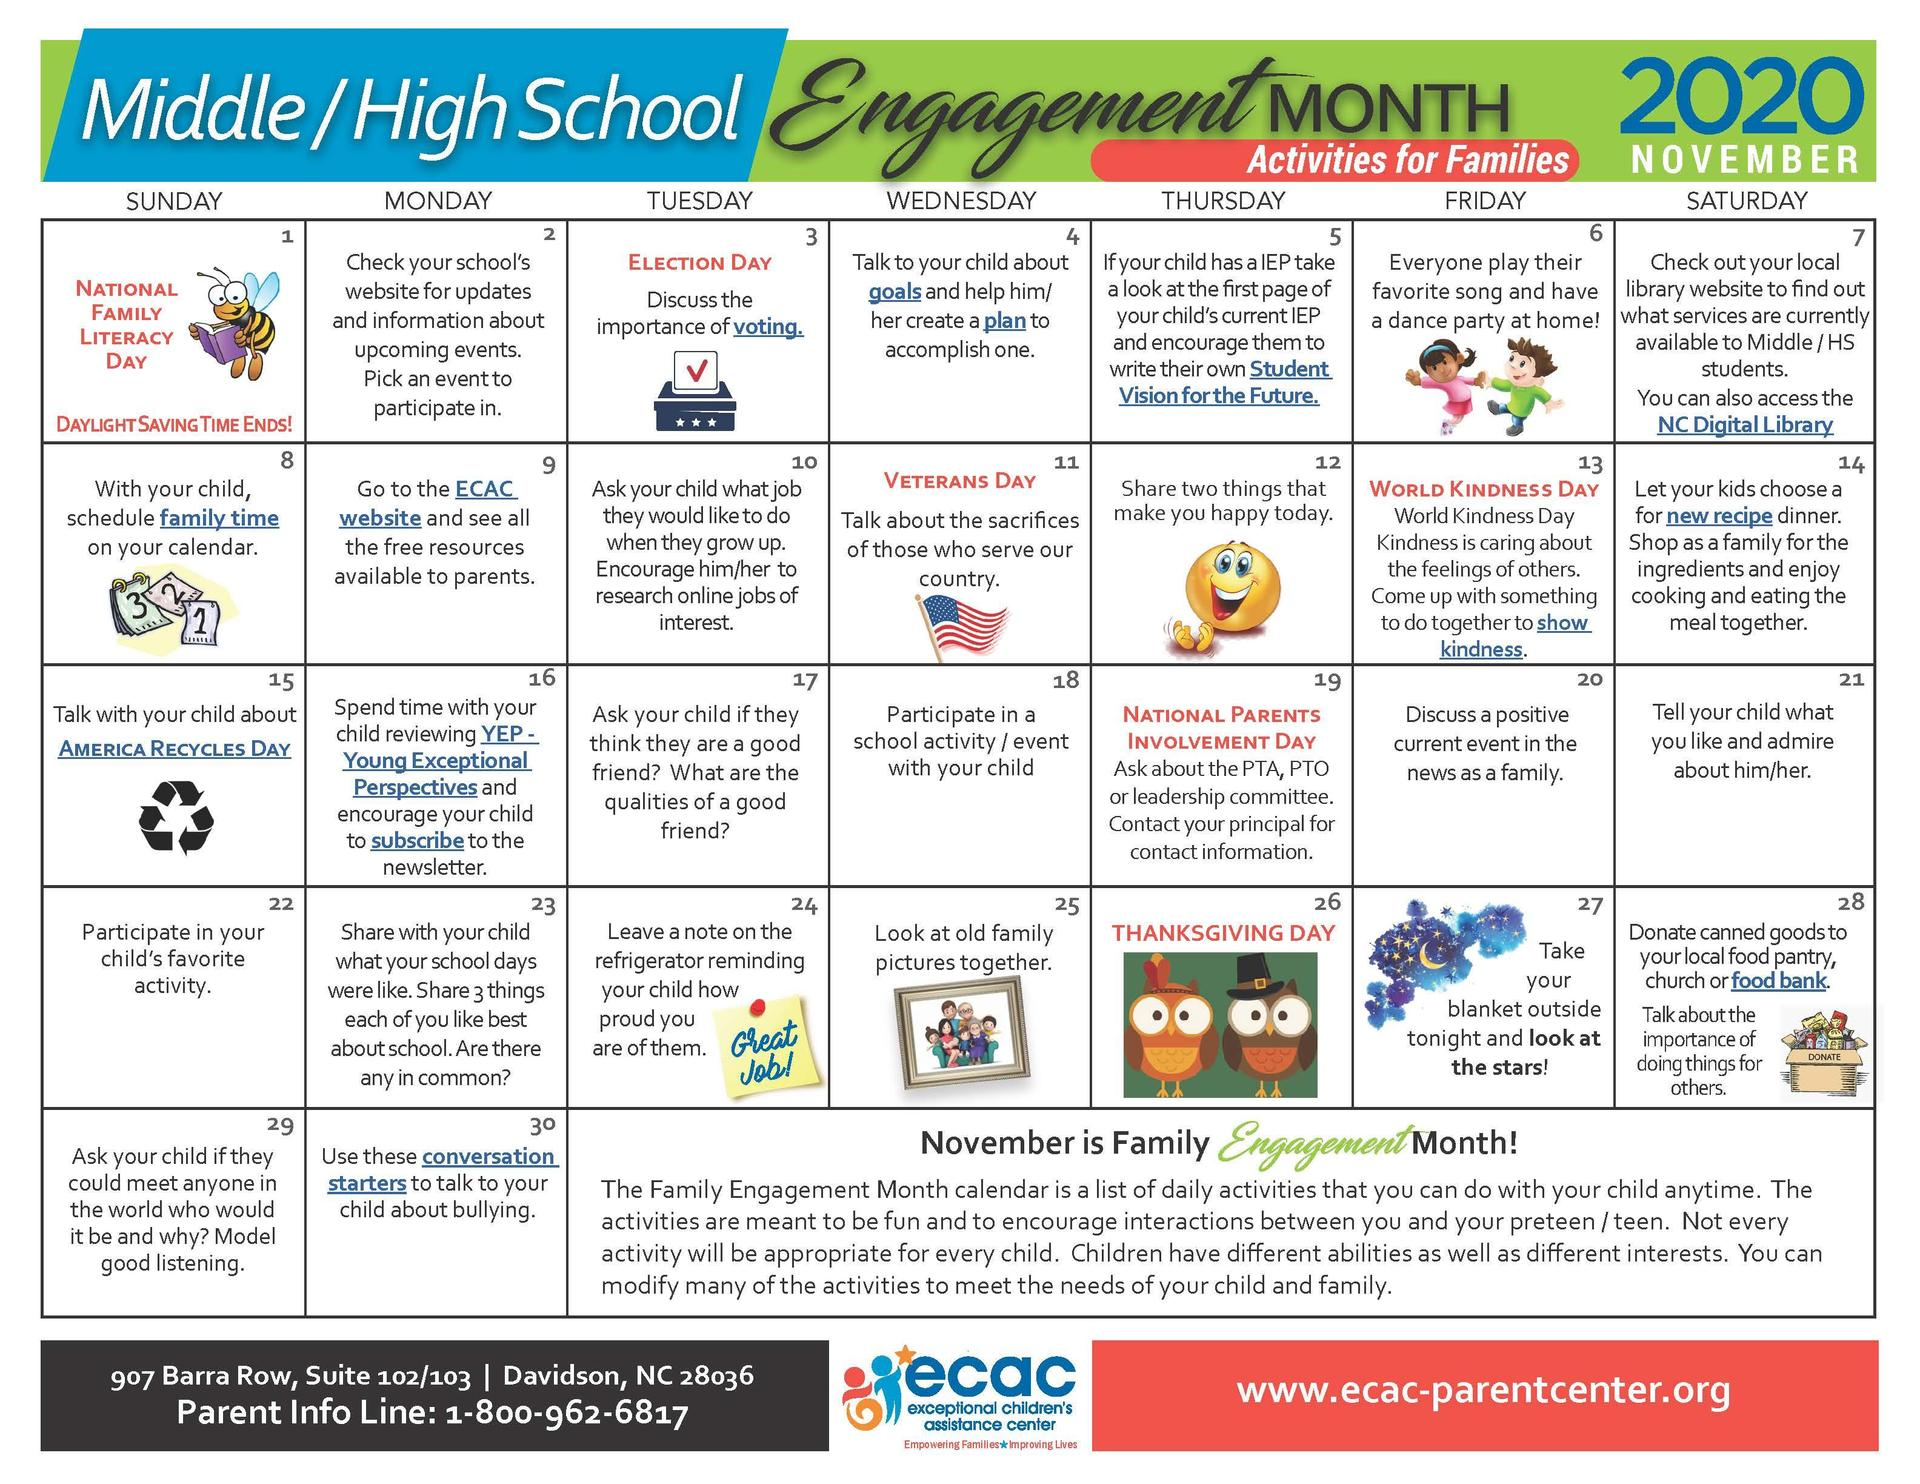 Middle/High - Family Engagement Calendar